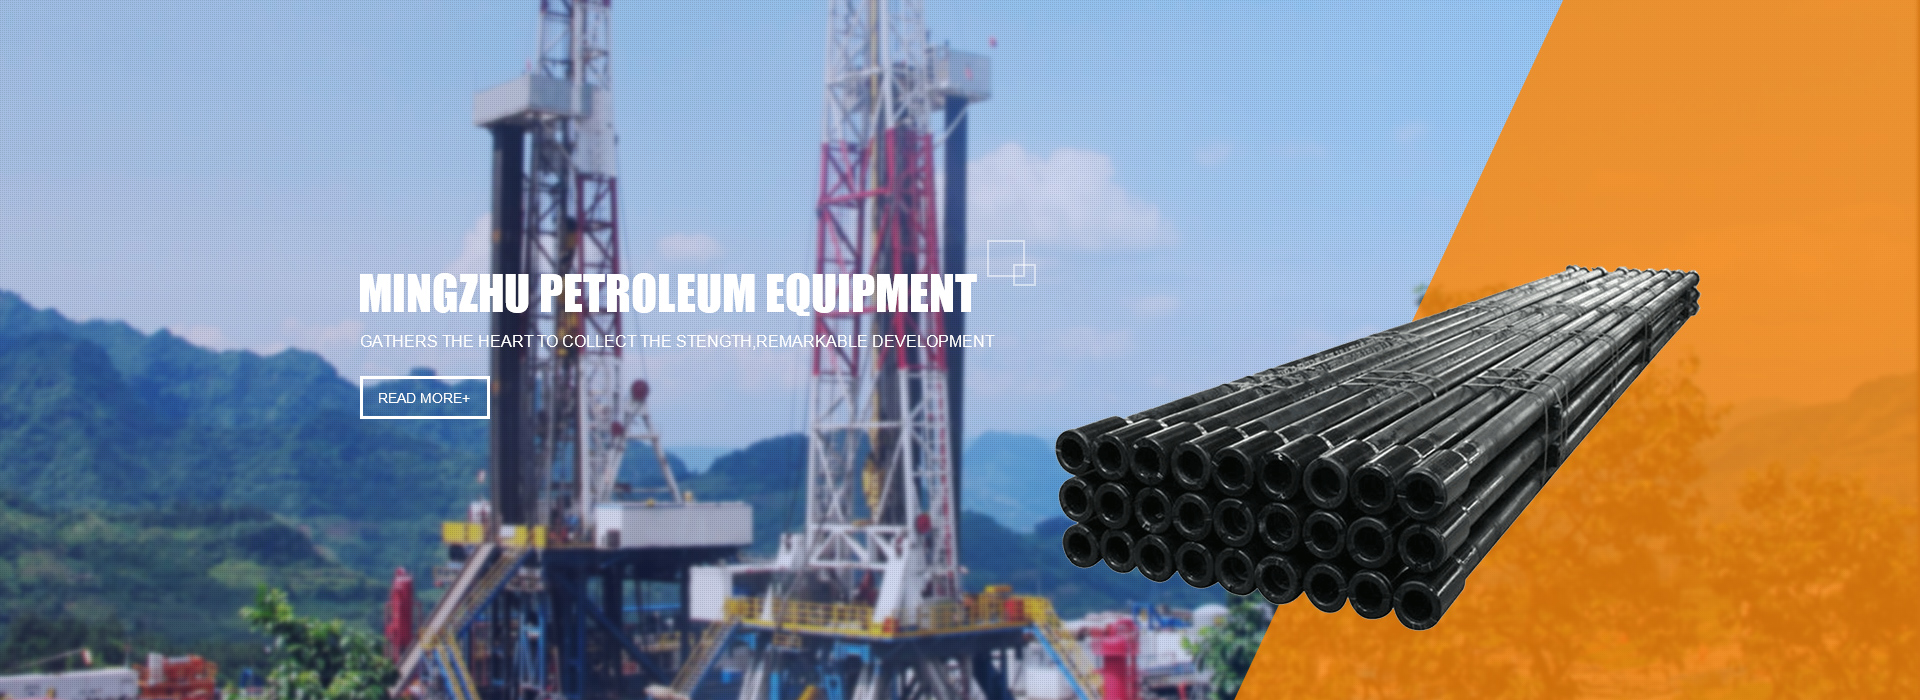 MINGZHU PETROLEUM EQUIPMENT